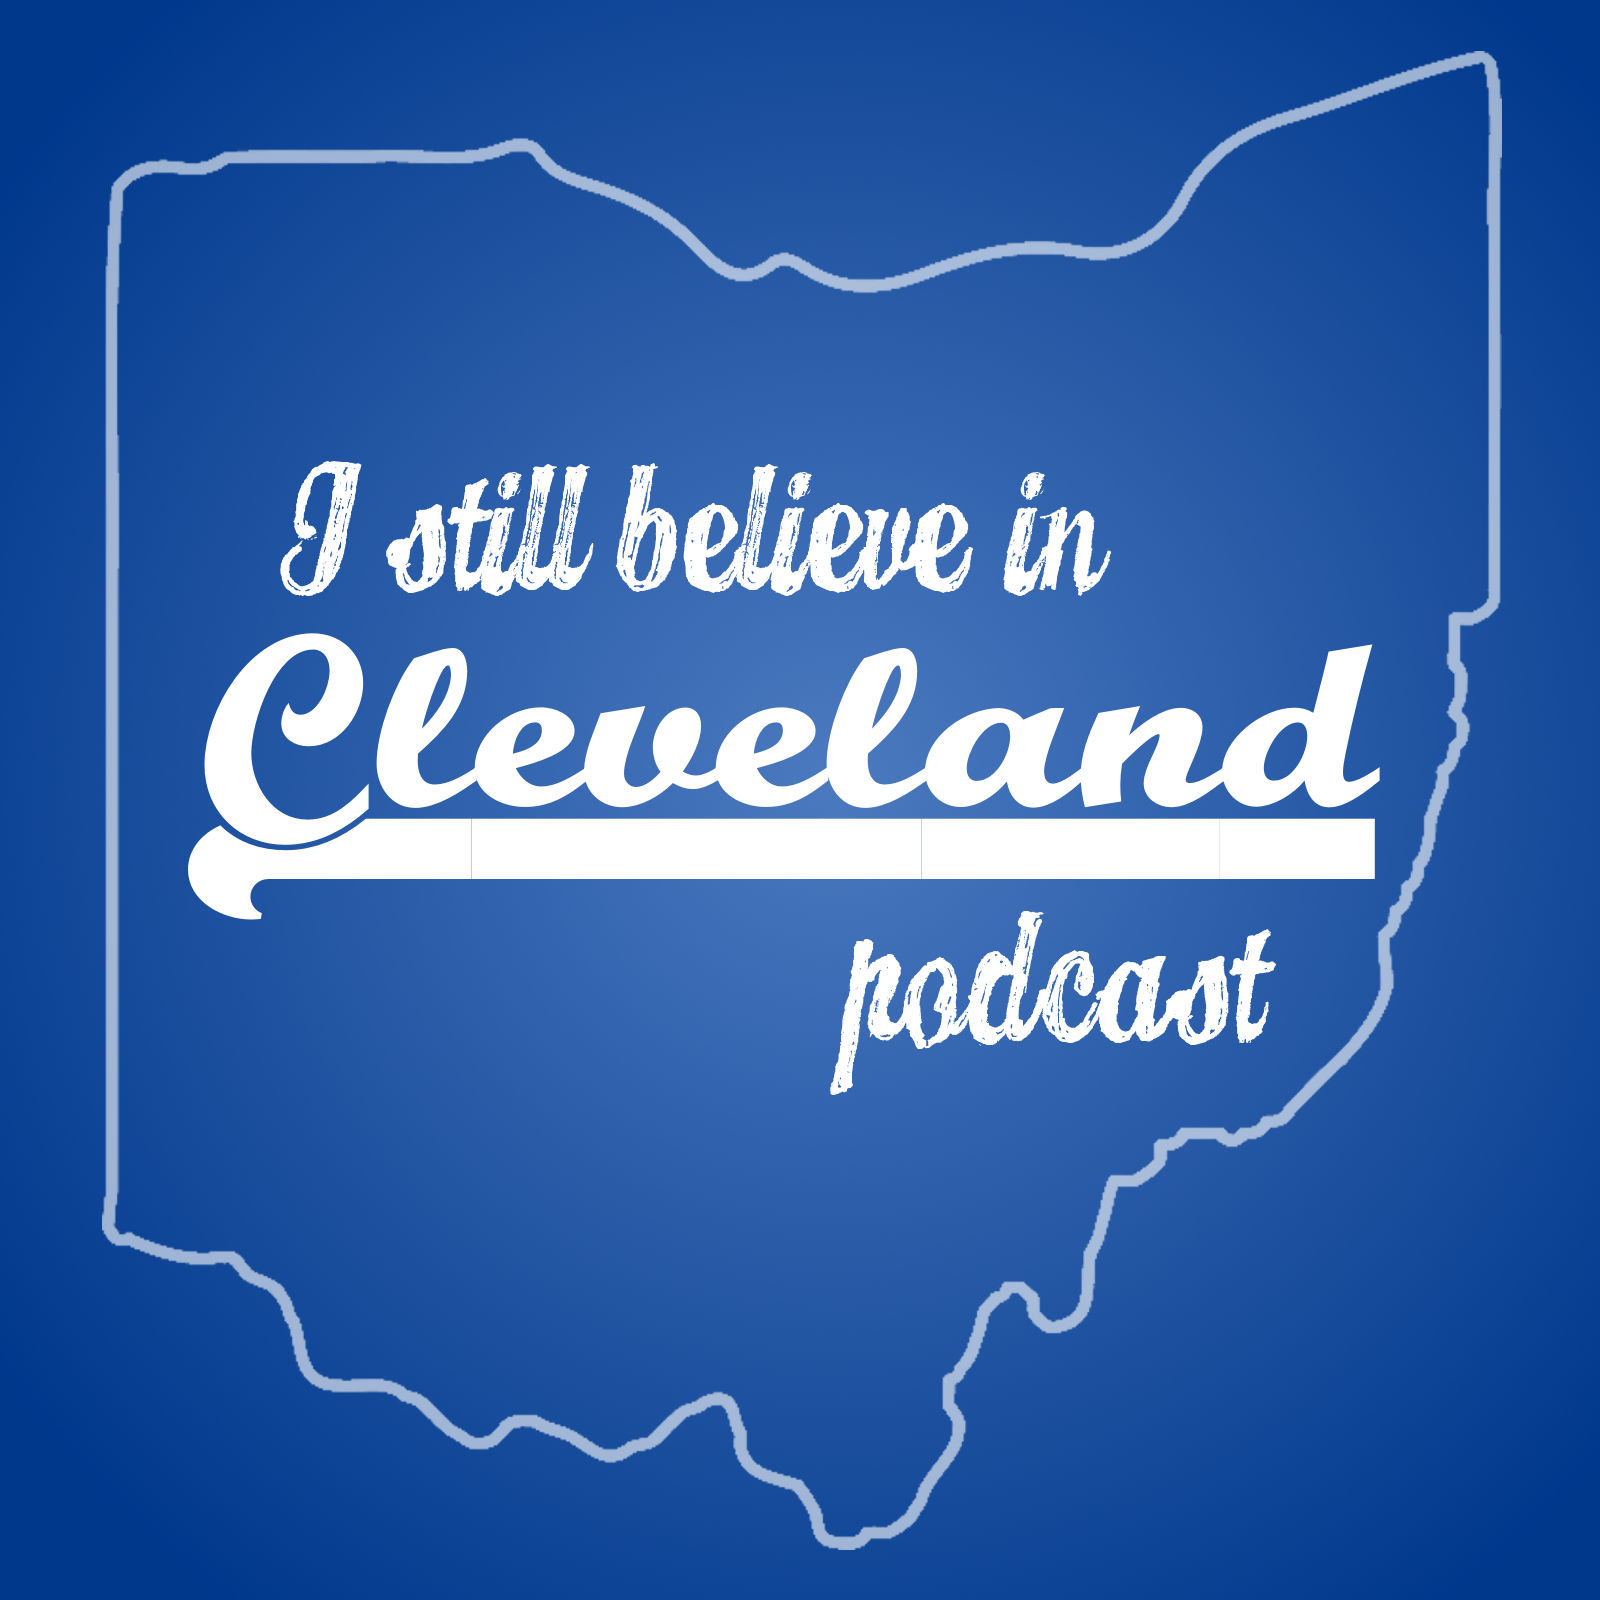 July 25th - Love Signs Extension with Cavs, Tough Night for Bieber and Indians, Browns Hard Knocks